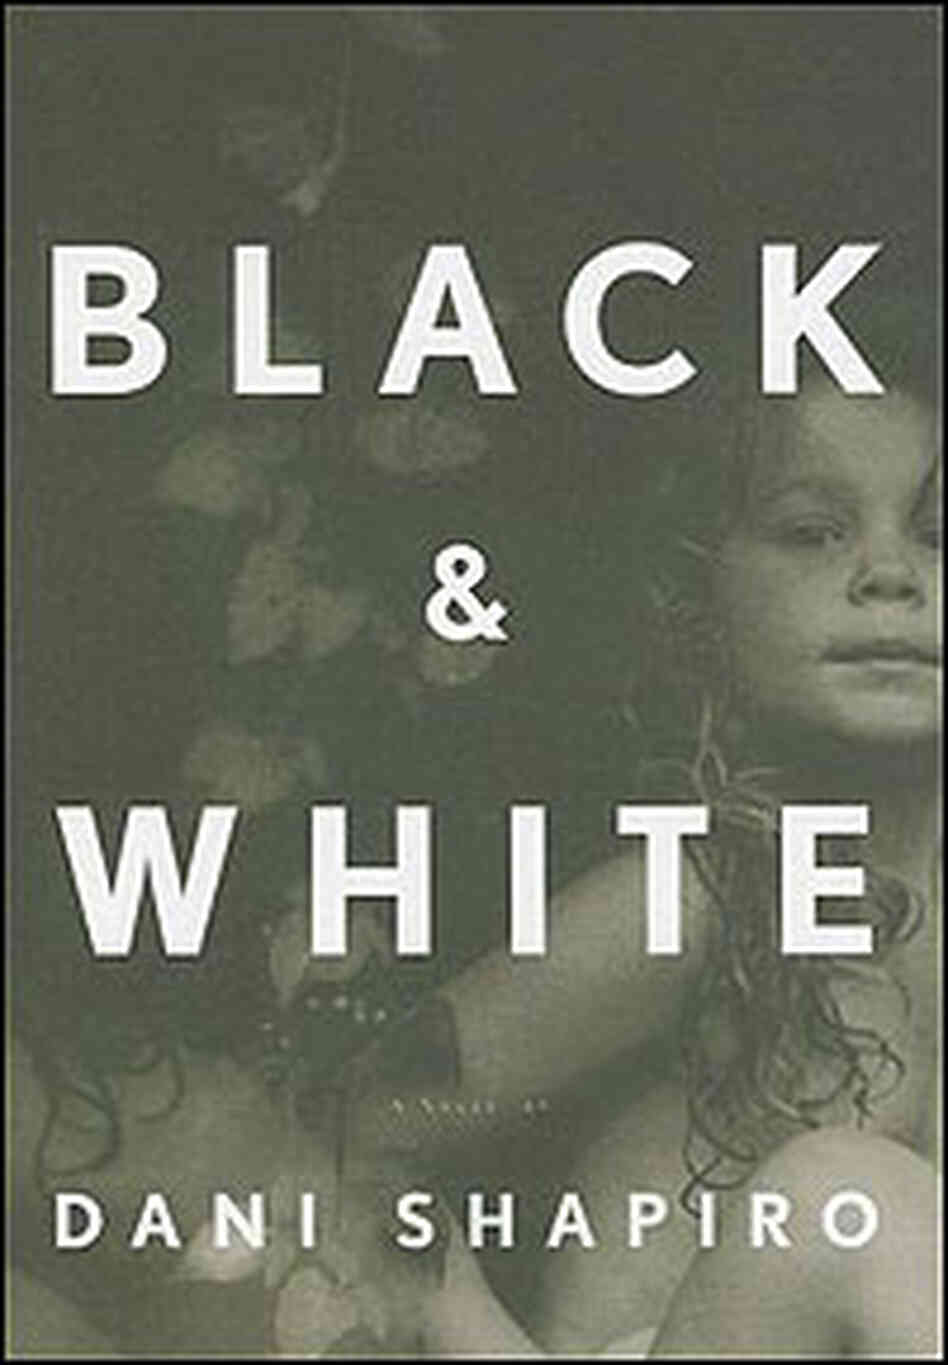 Black & White book cover